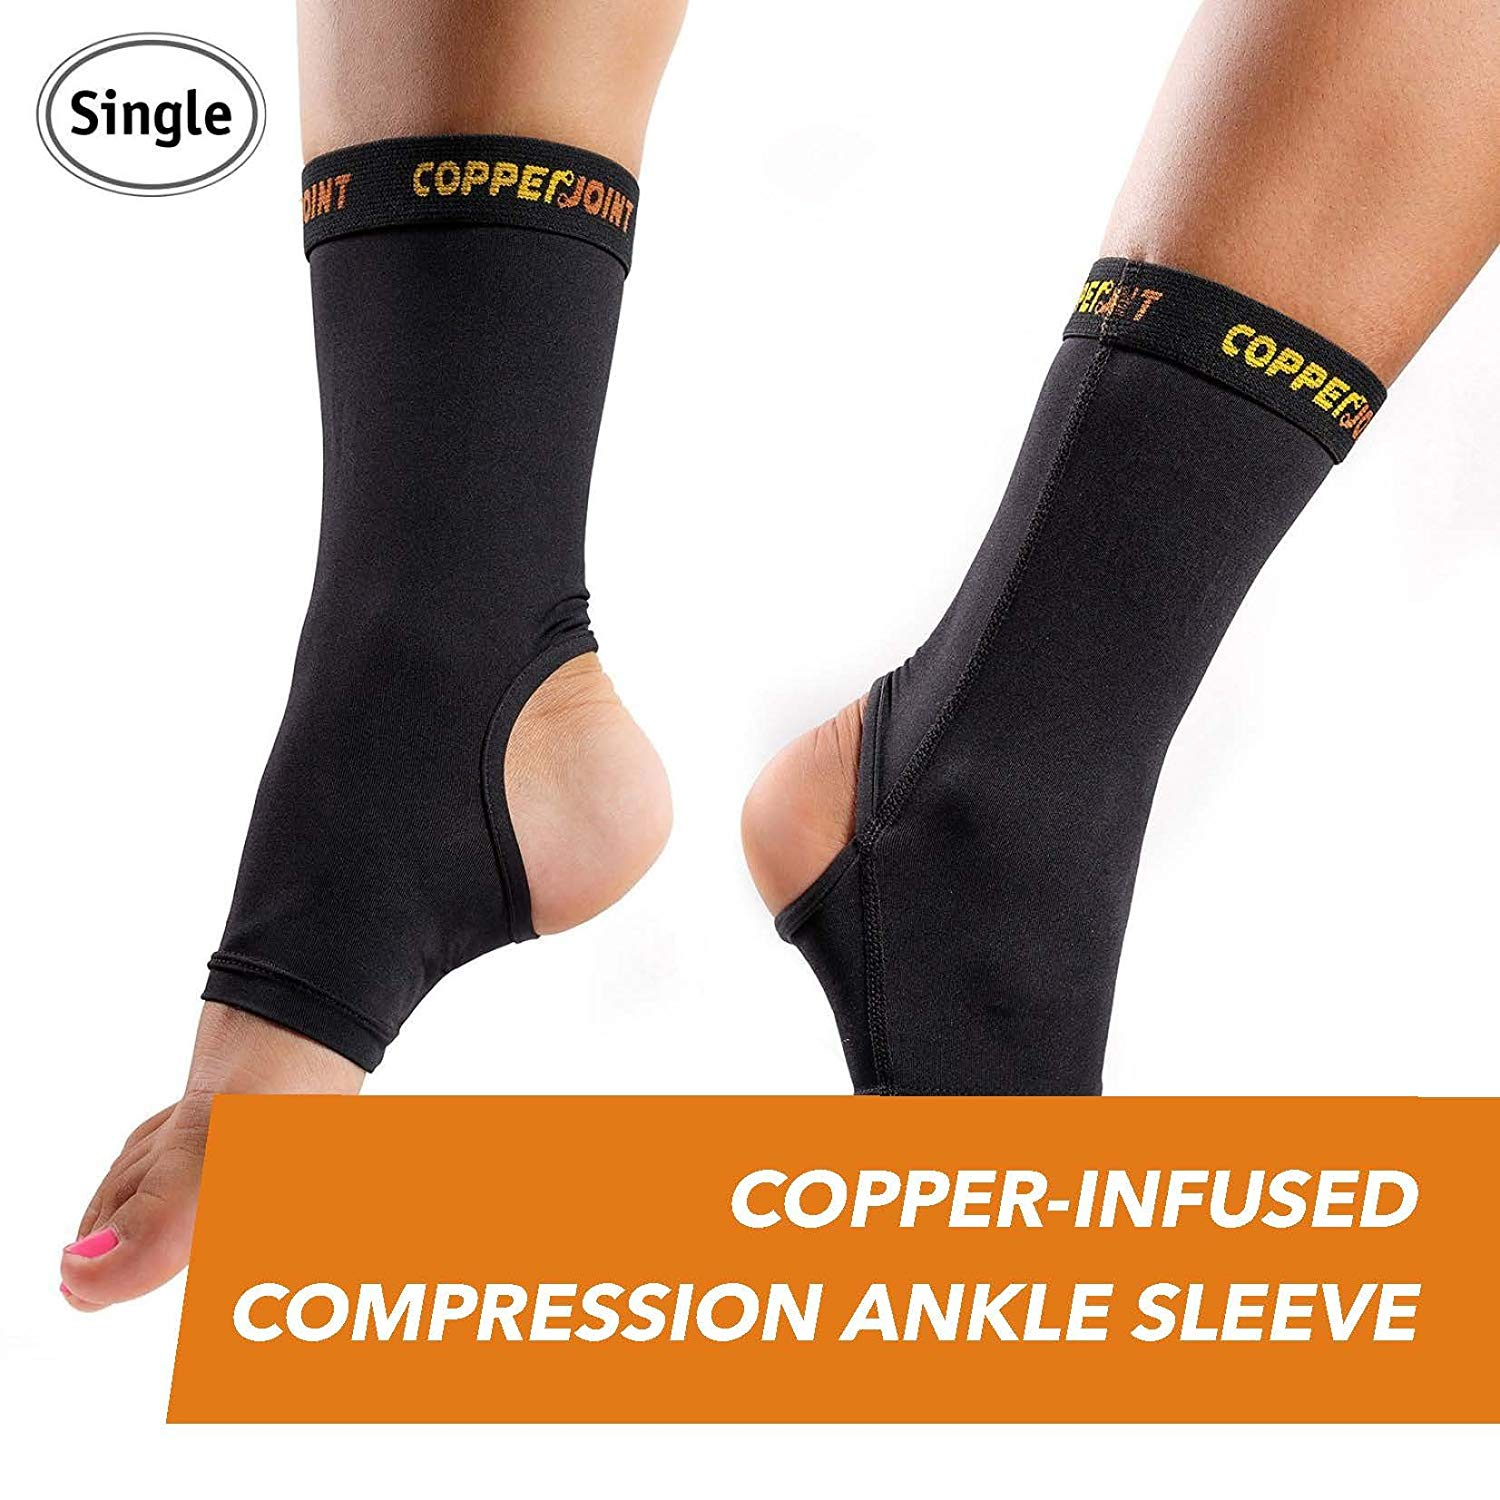 d7240252c2 Get Quotations · CopperJoint Copper-Infused Compression Ankle Sleeve,  High-Performance, Breathable Design Provides Comfortable